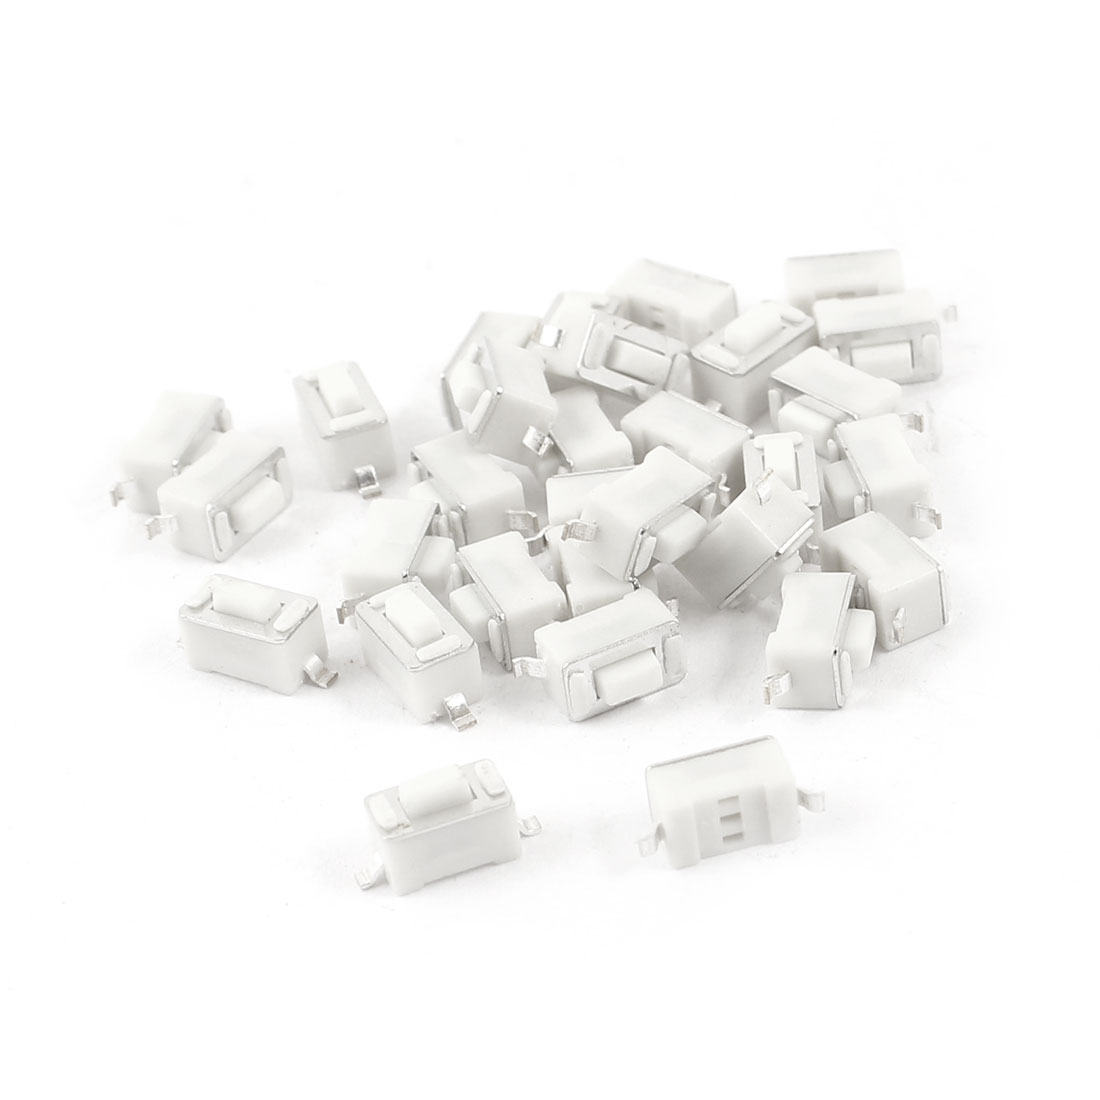 30 Pcs Momentary SMD SMT PCB Mount SPST Tactile Switch 6mmx3mmx4.3mm